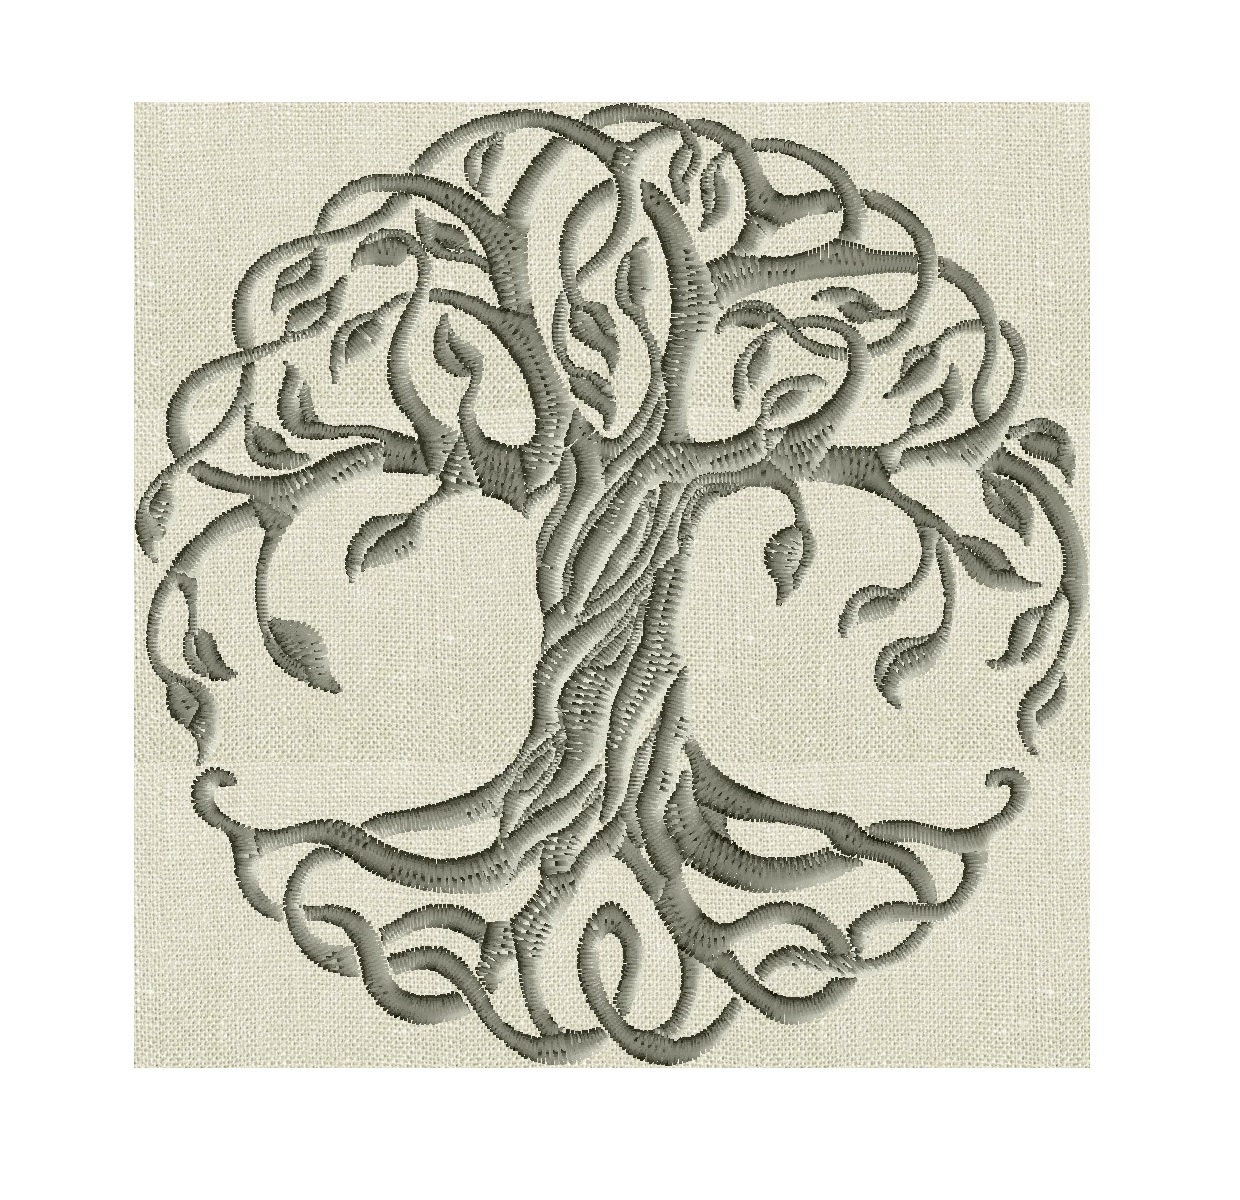 tree of life embroidery design -font not included- embroidery design file - instant download